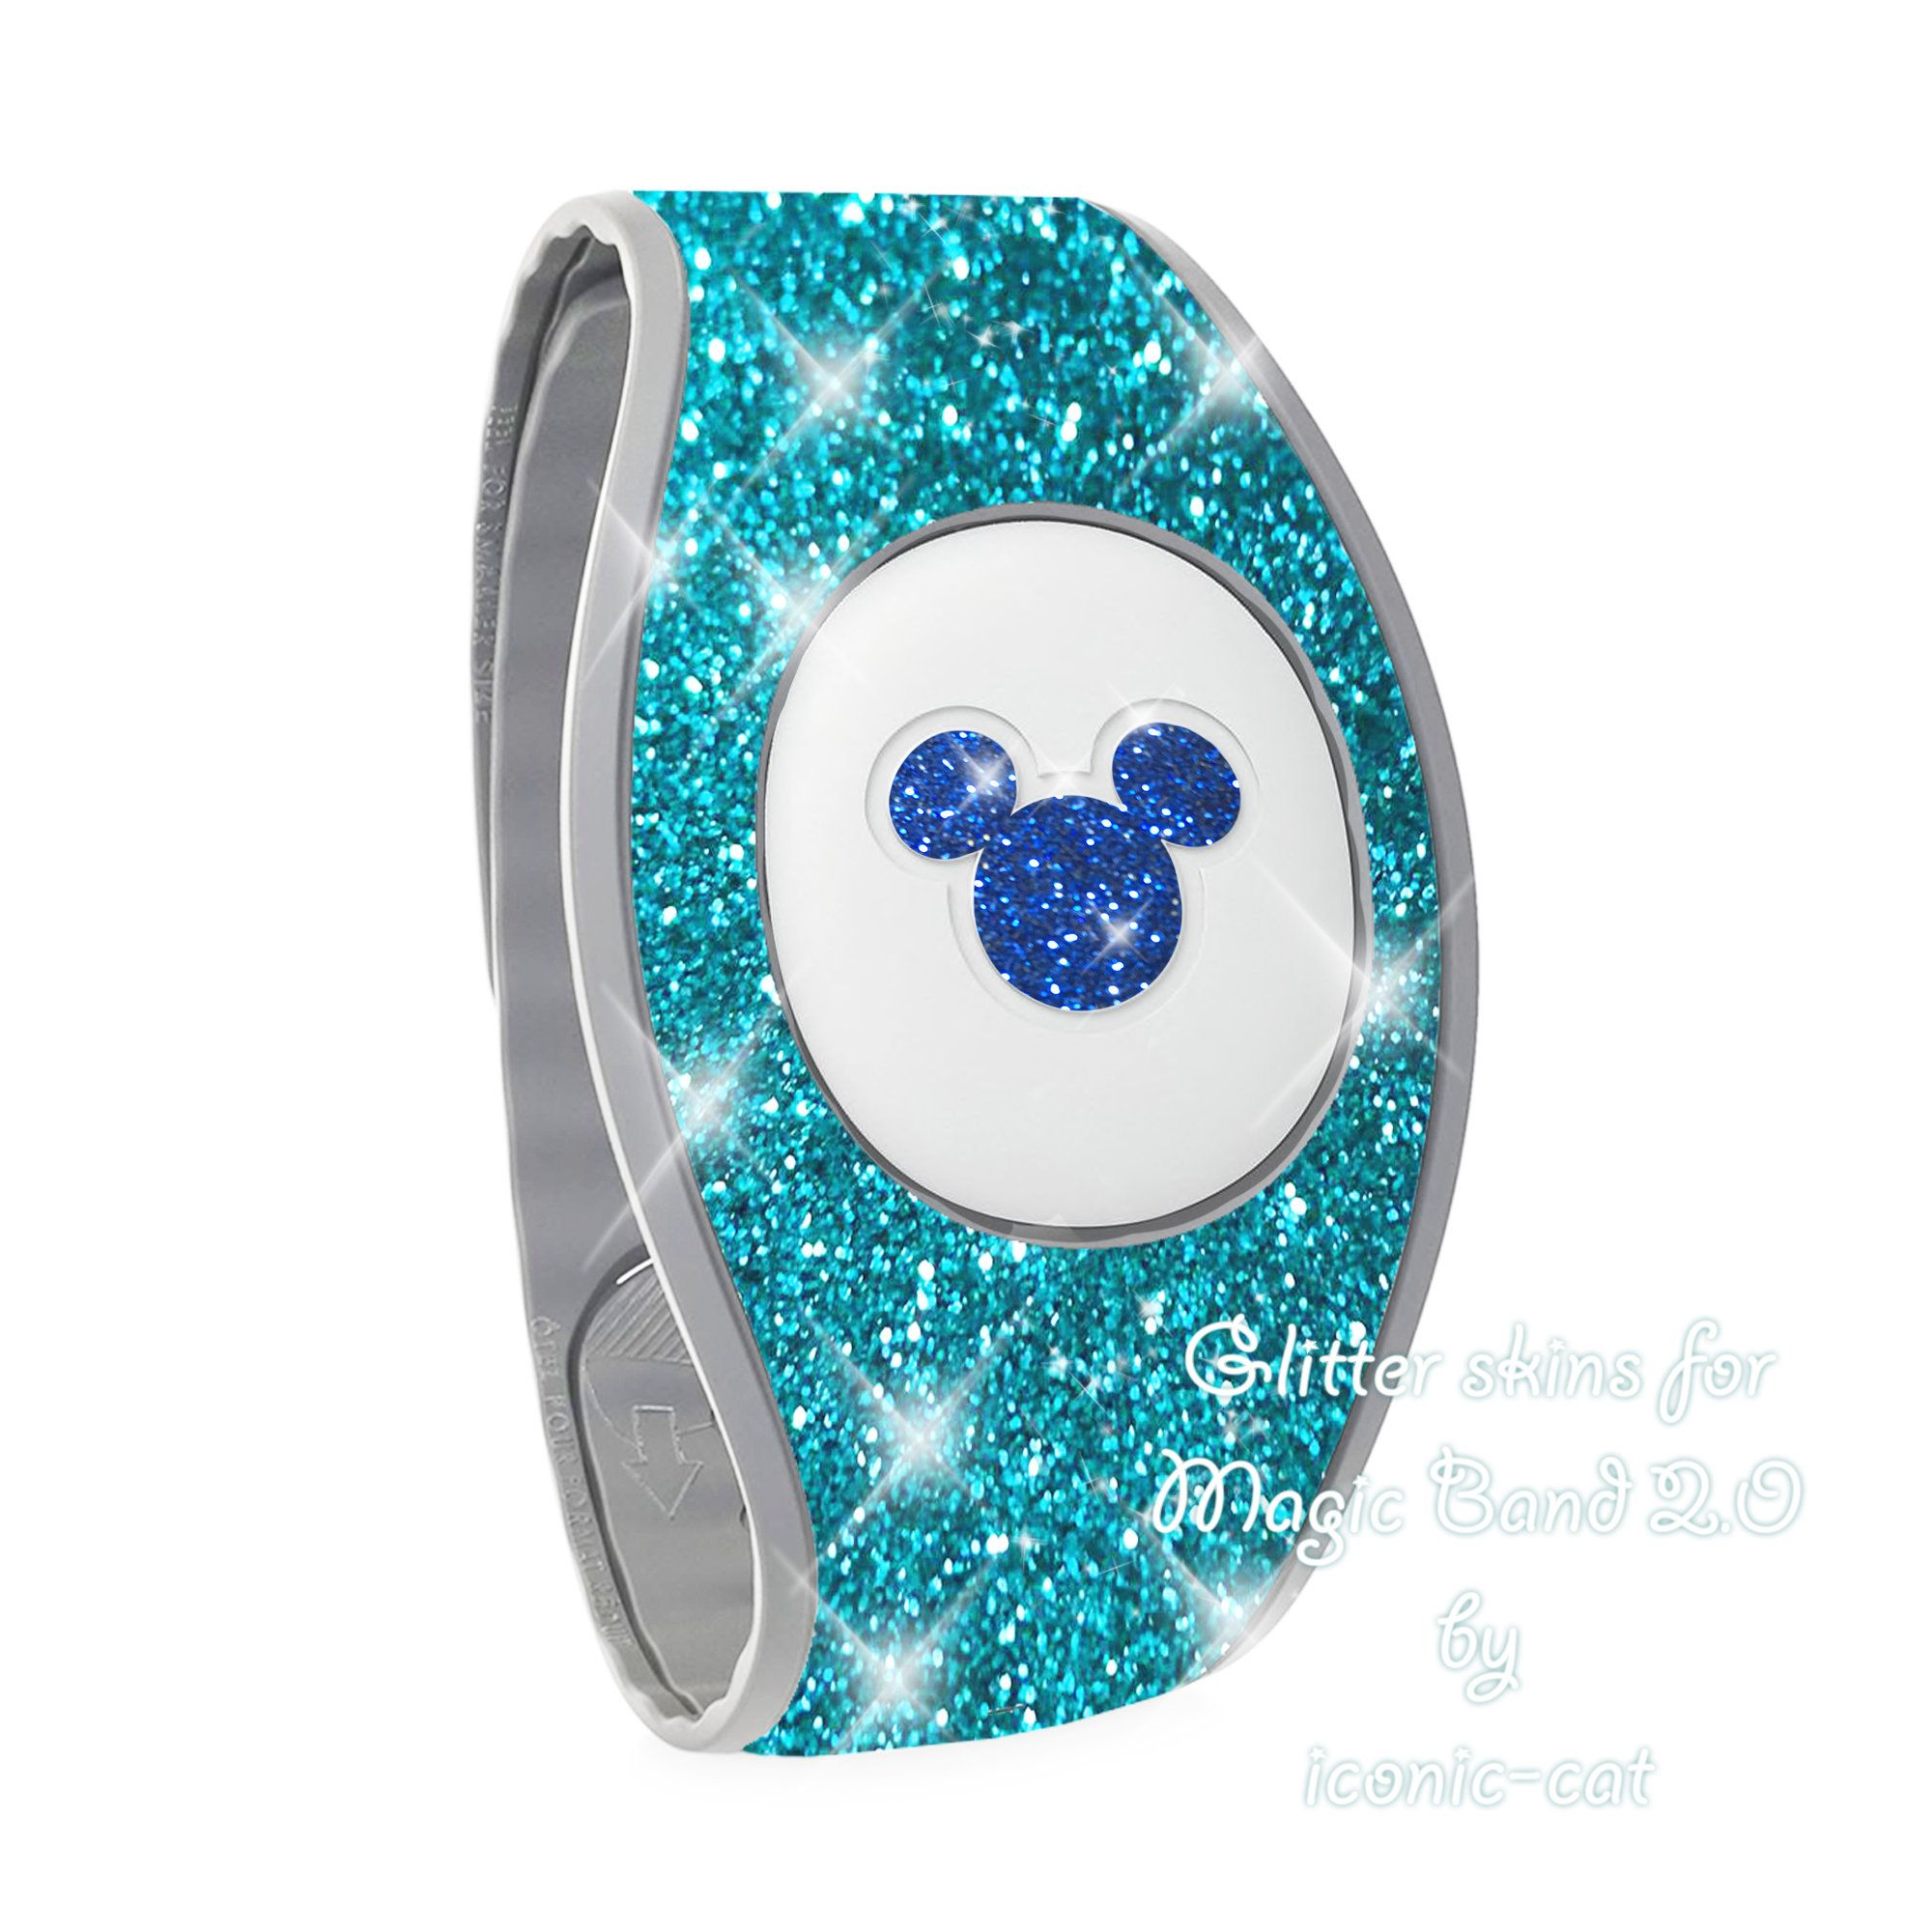 Vinyl Skin Decal Wrap Sticker Cover for the MagicBand 2.0 Magic Band Make A Wish